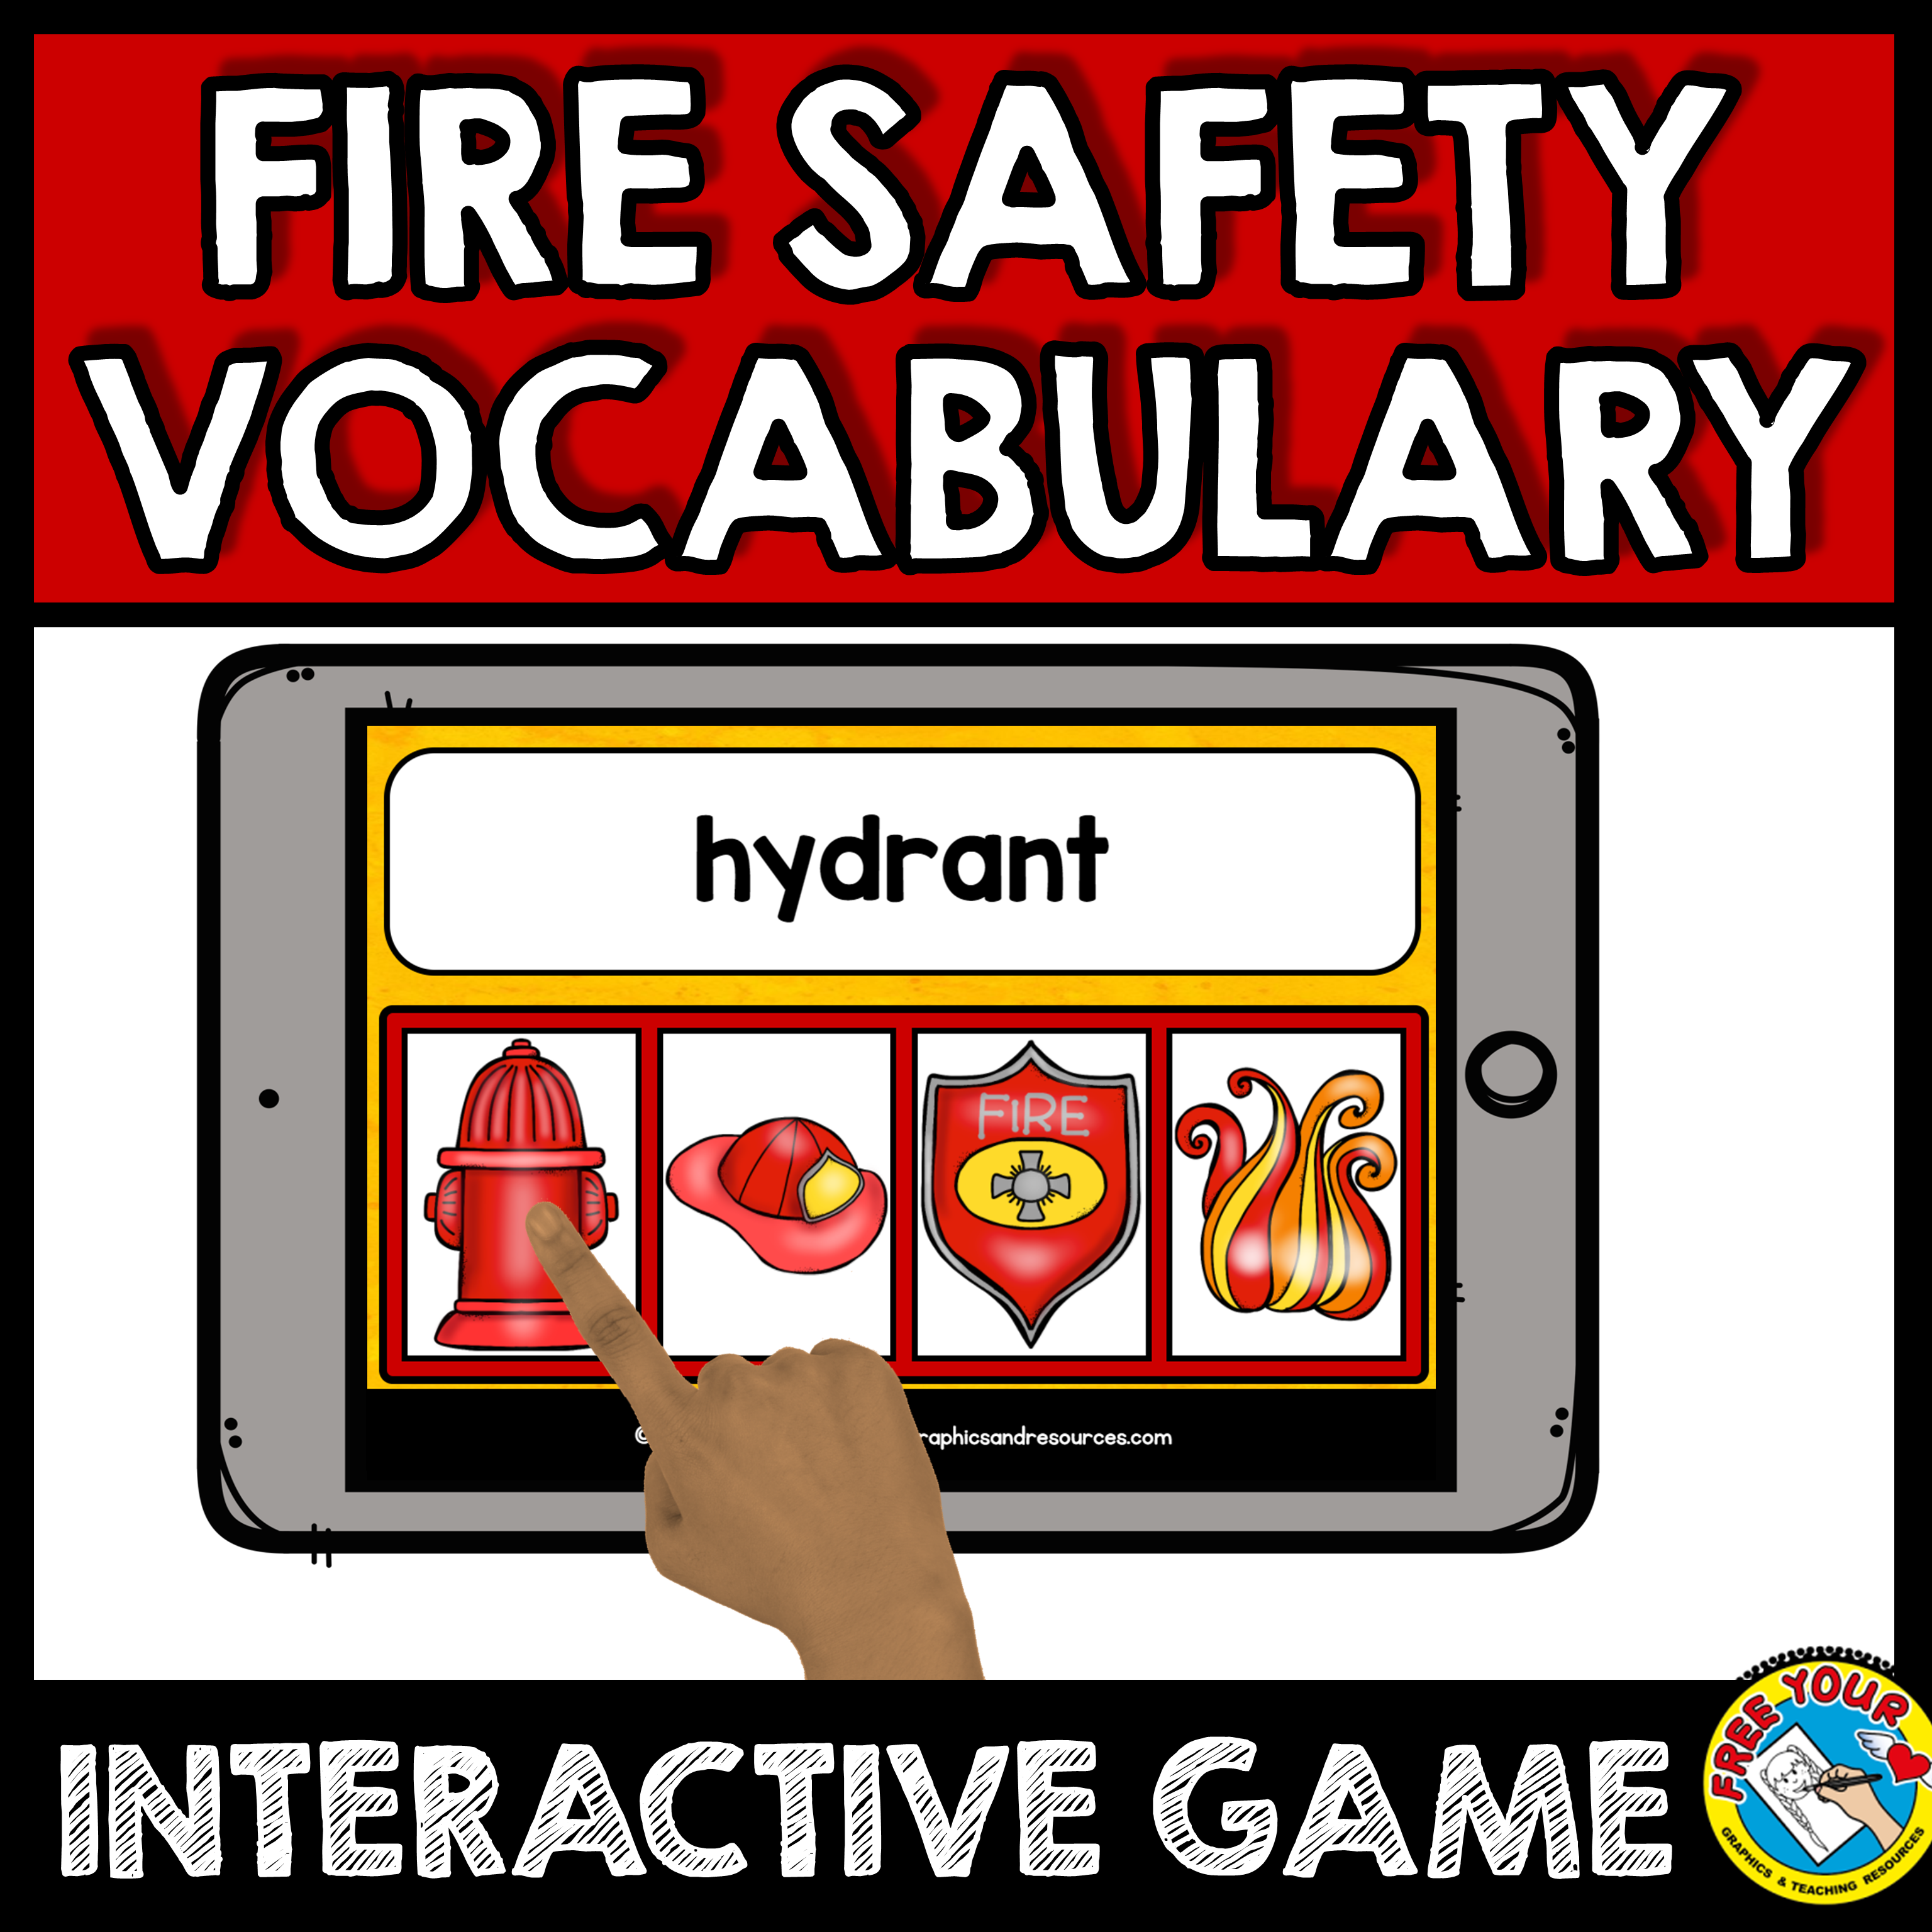 Fire safety activities first grade, kindergarten